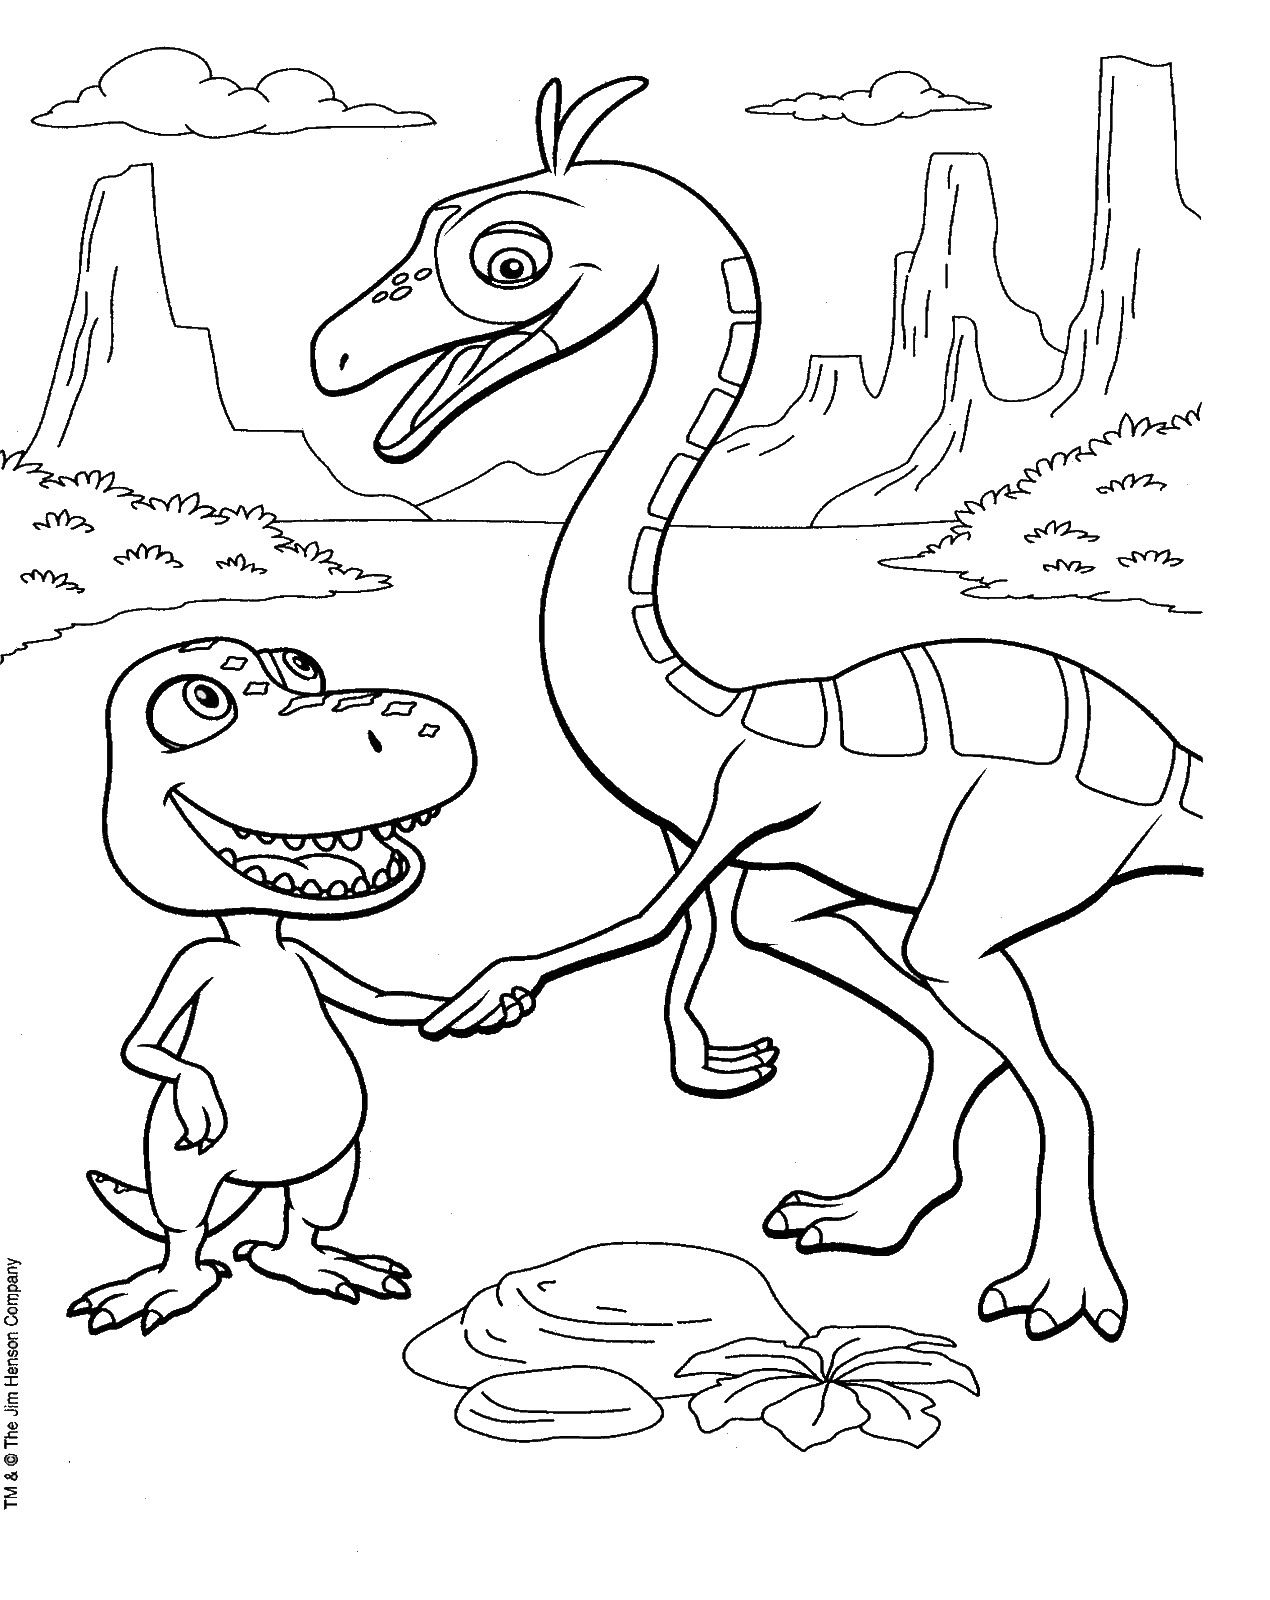 Danny And The Dinosaur Coloring Pages Dinosaur Coloring Pages Dinosaur Coloring Coloring Pages